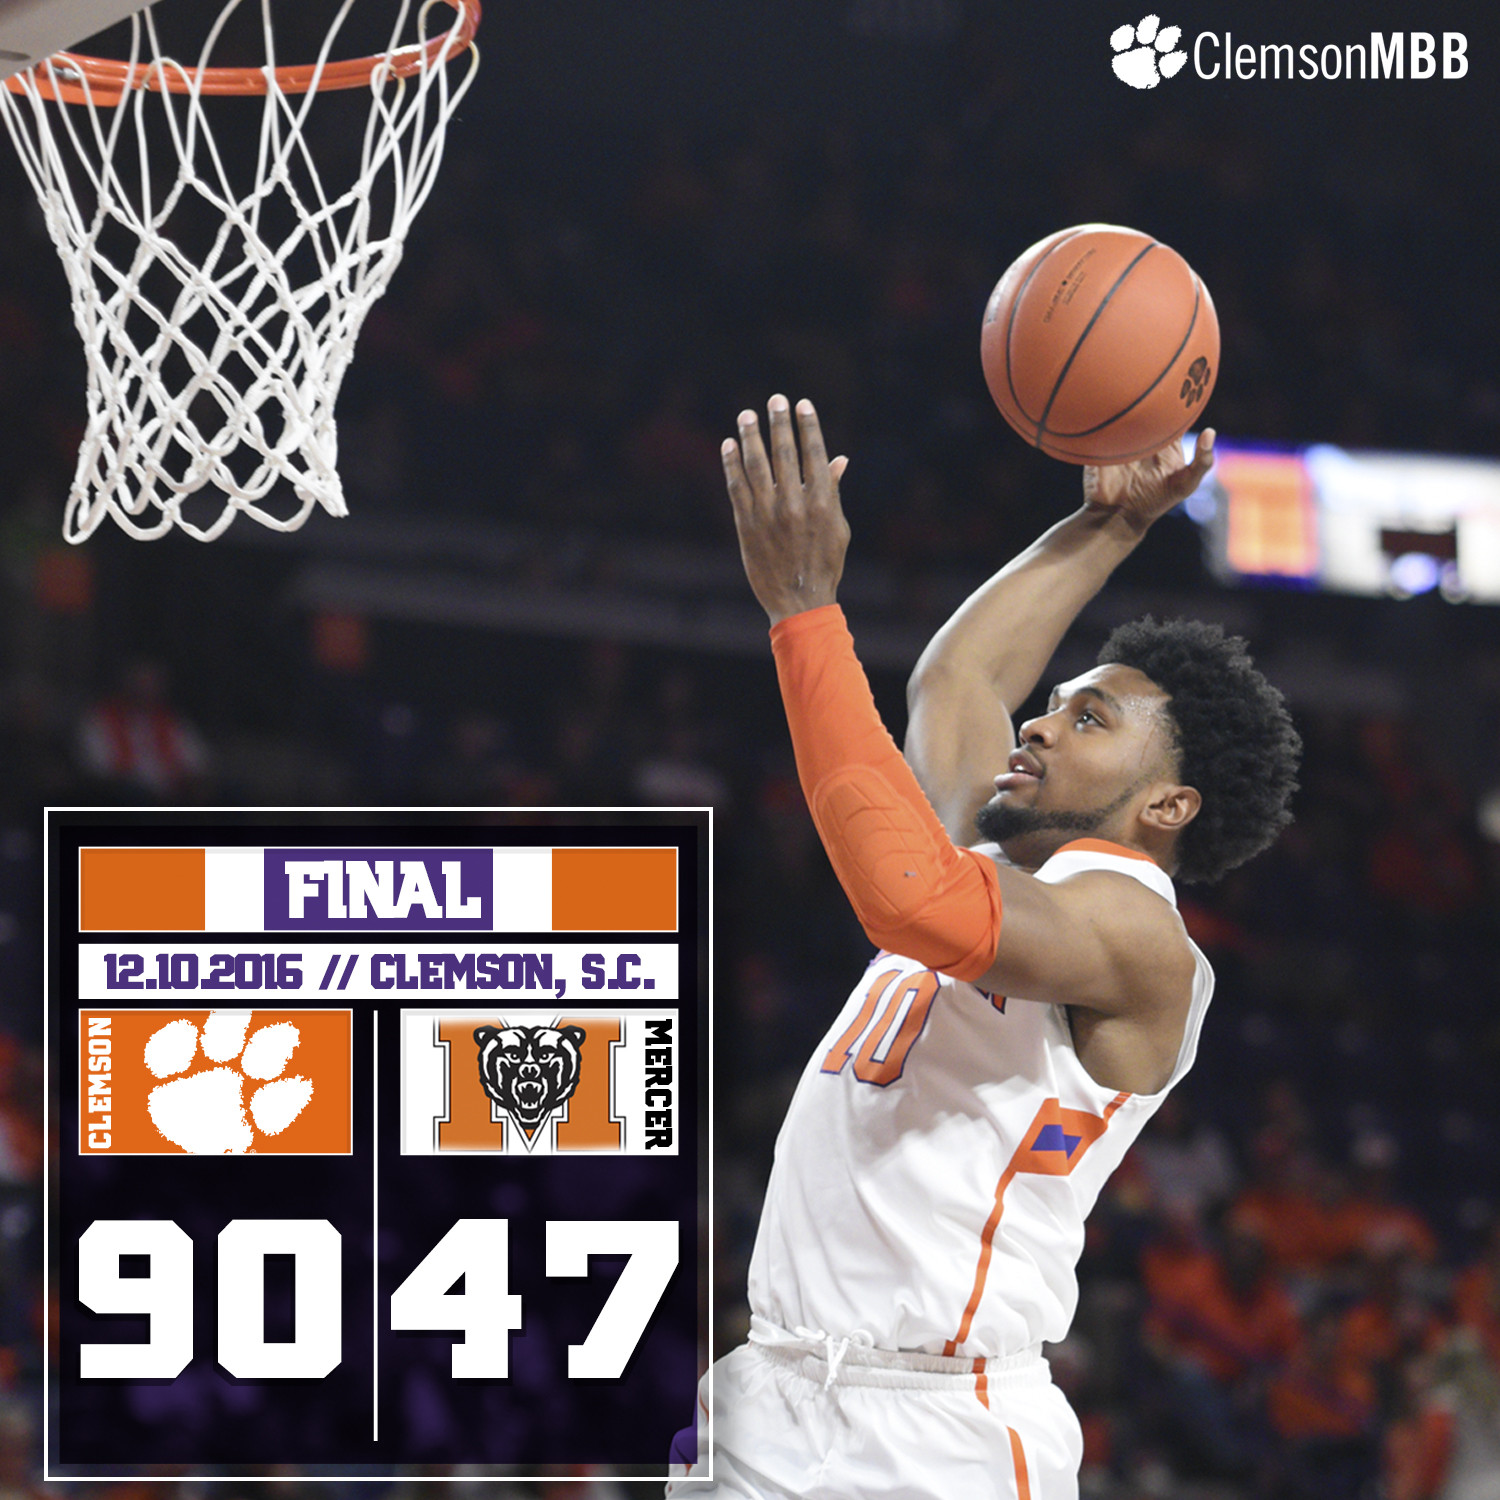 Clemson Defeats Mercer, 90-47